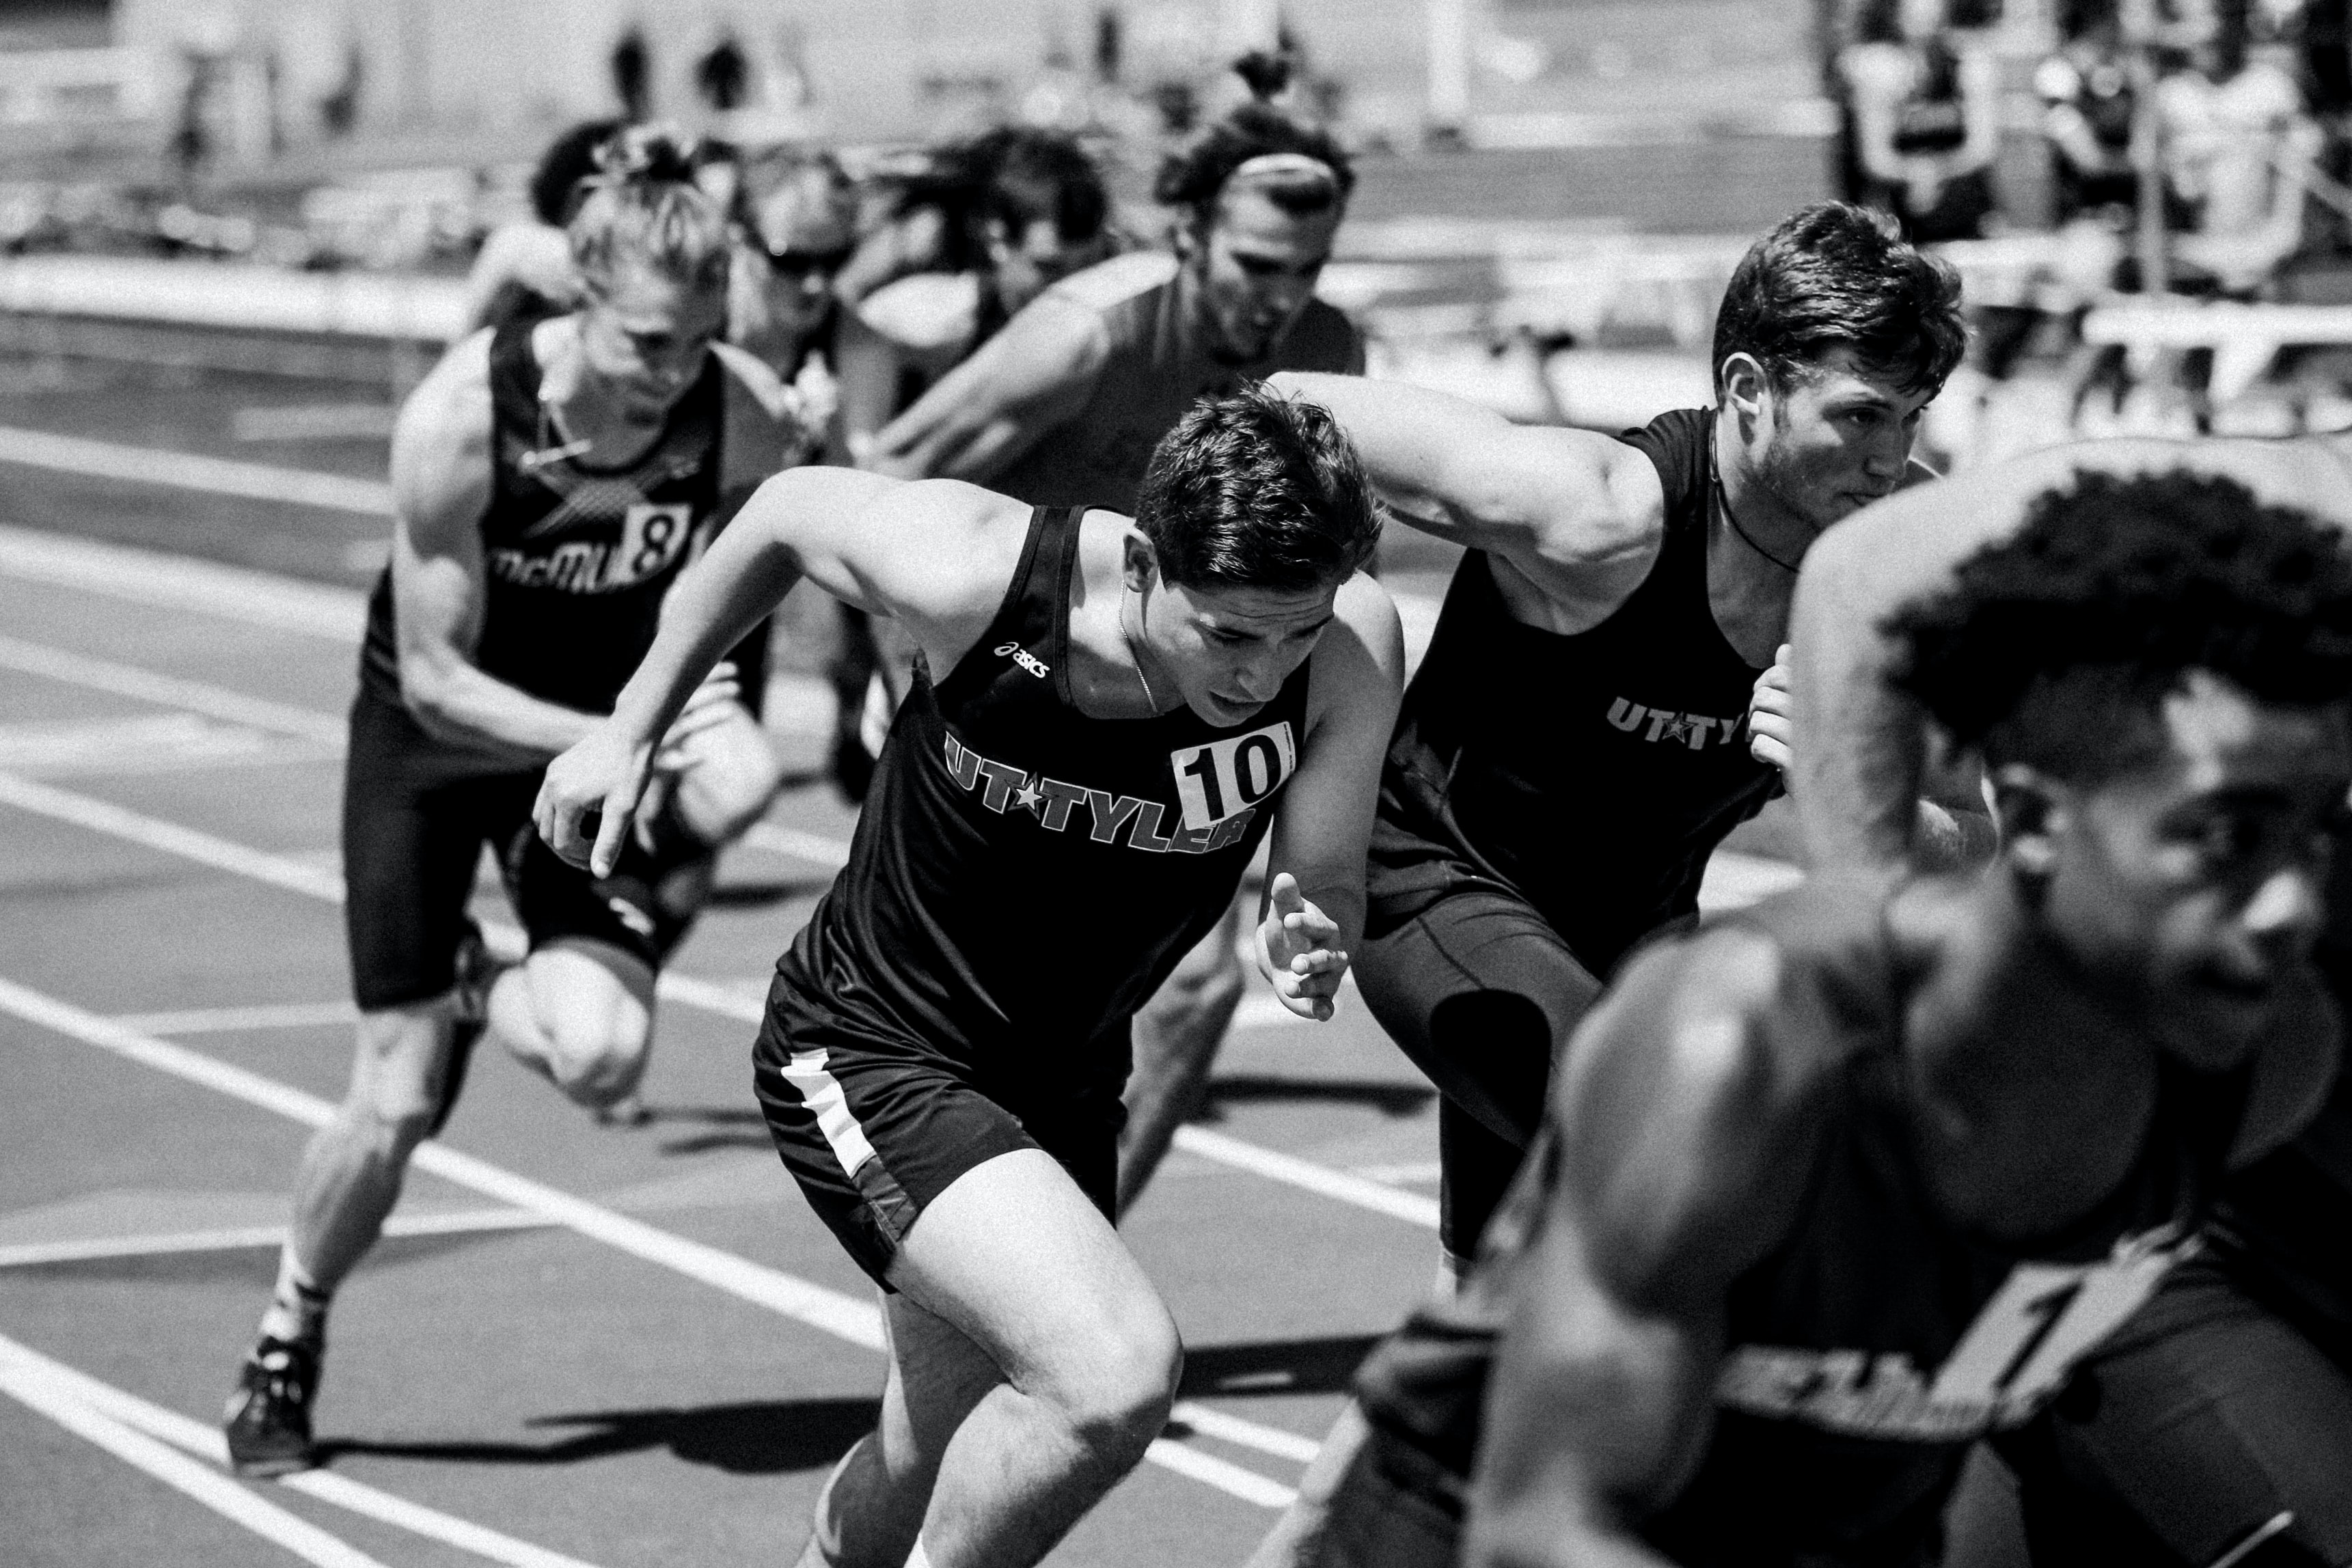 A black and white shot of runners racing on a track